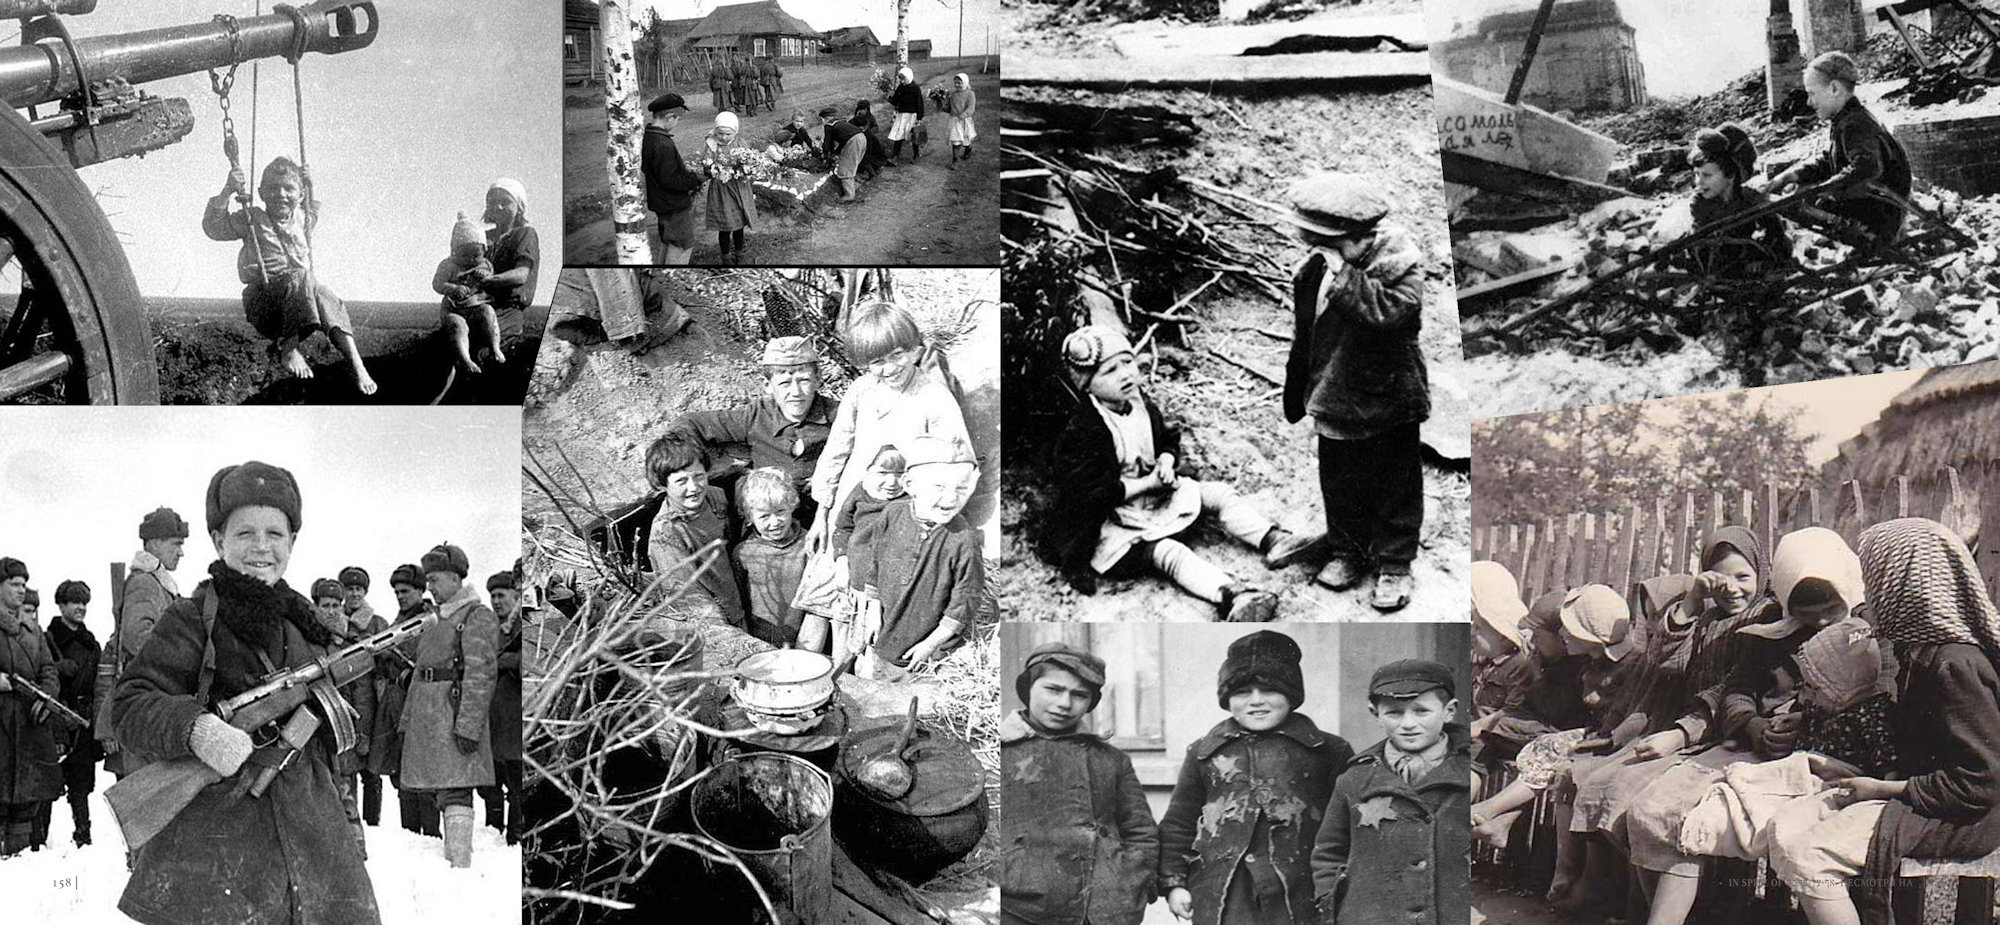 Pages-158-159: Collage of children during WWII in the USSR